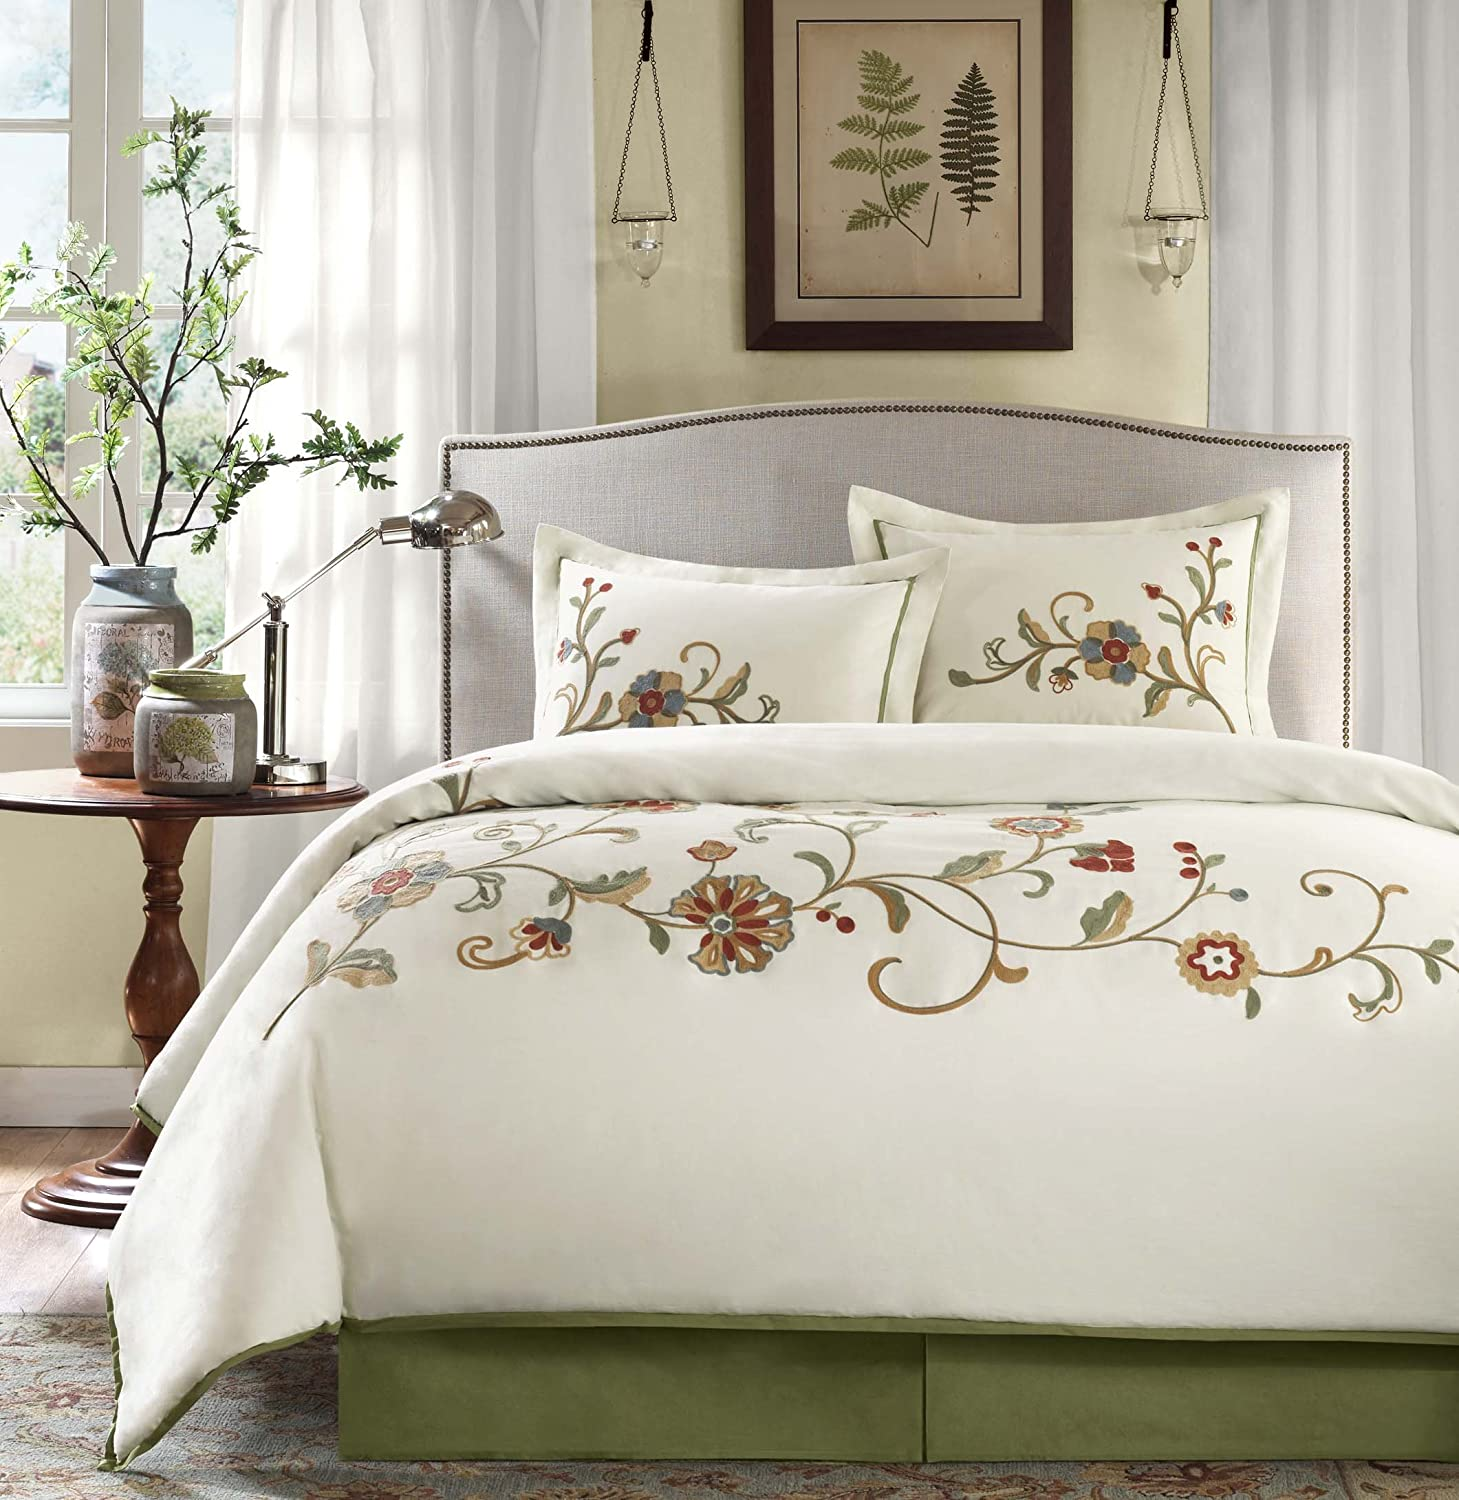 bath mansfield ivory park shipping overstock today bedding madison quilted sets product set free comforter